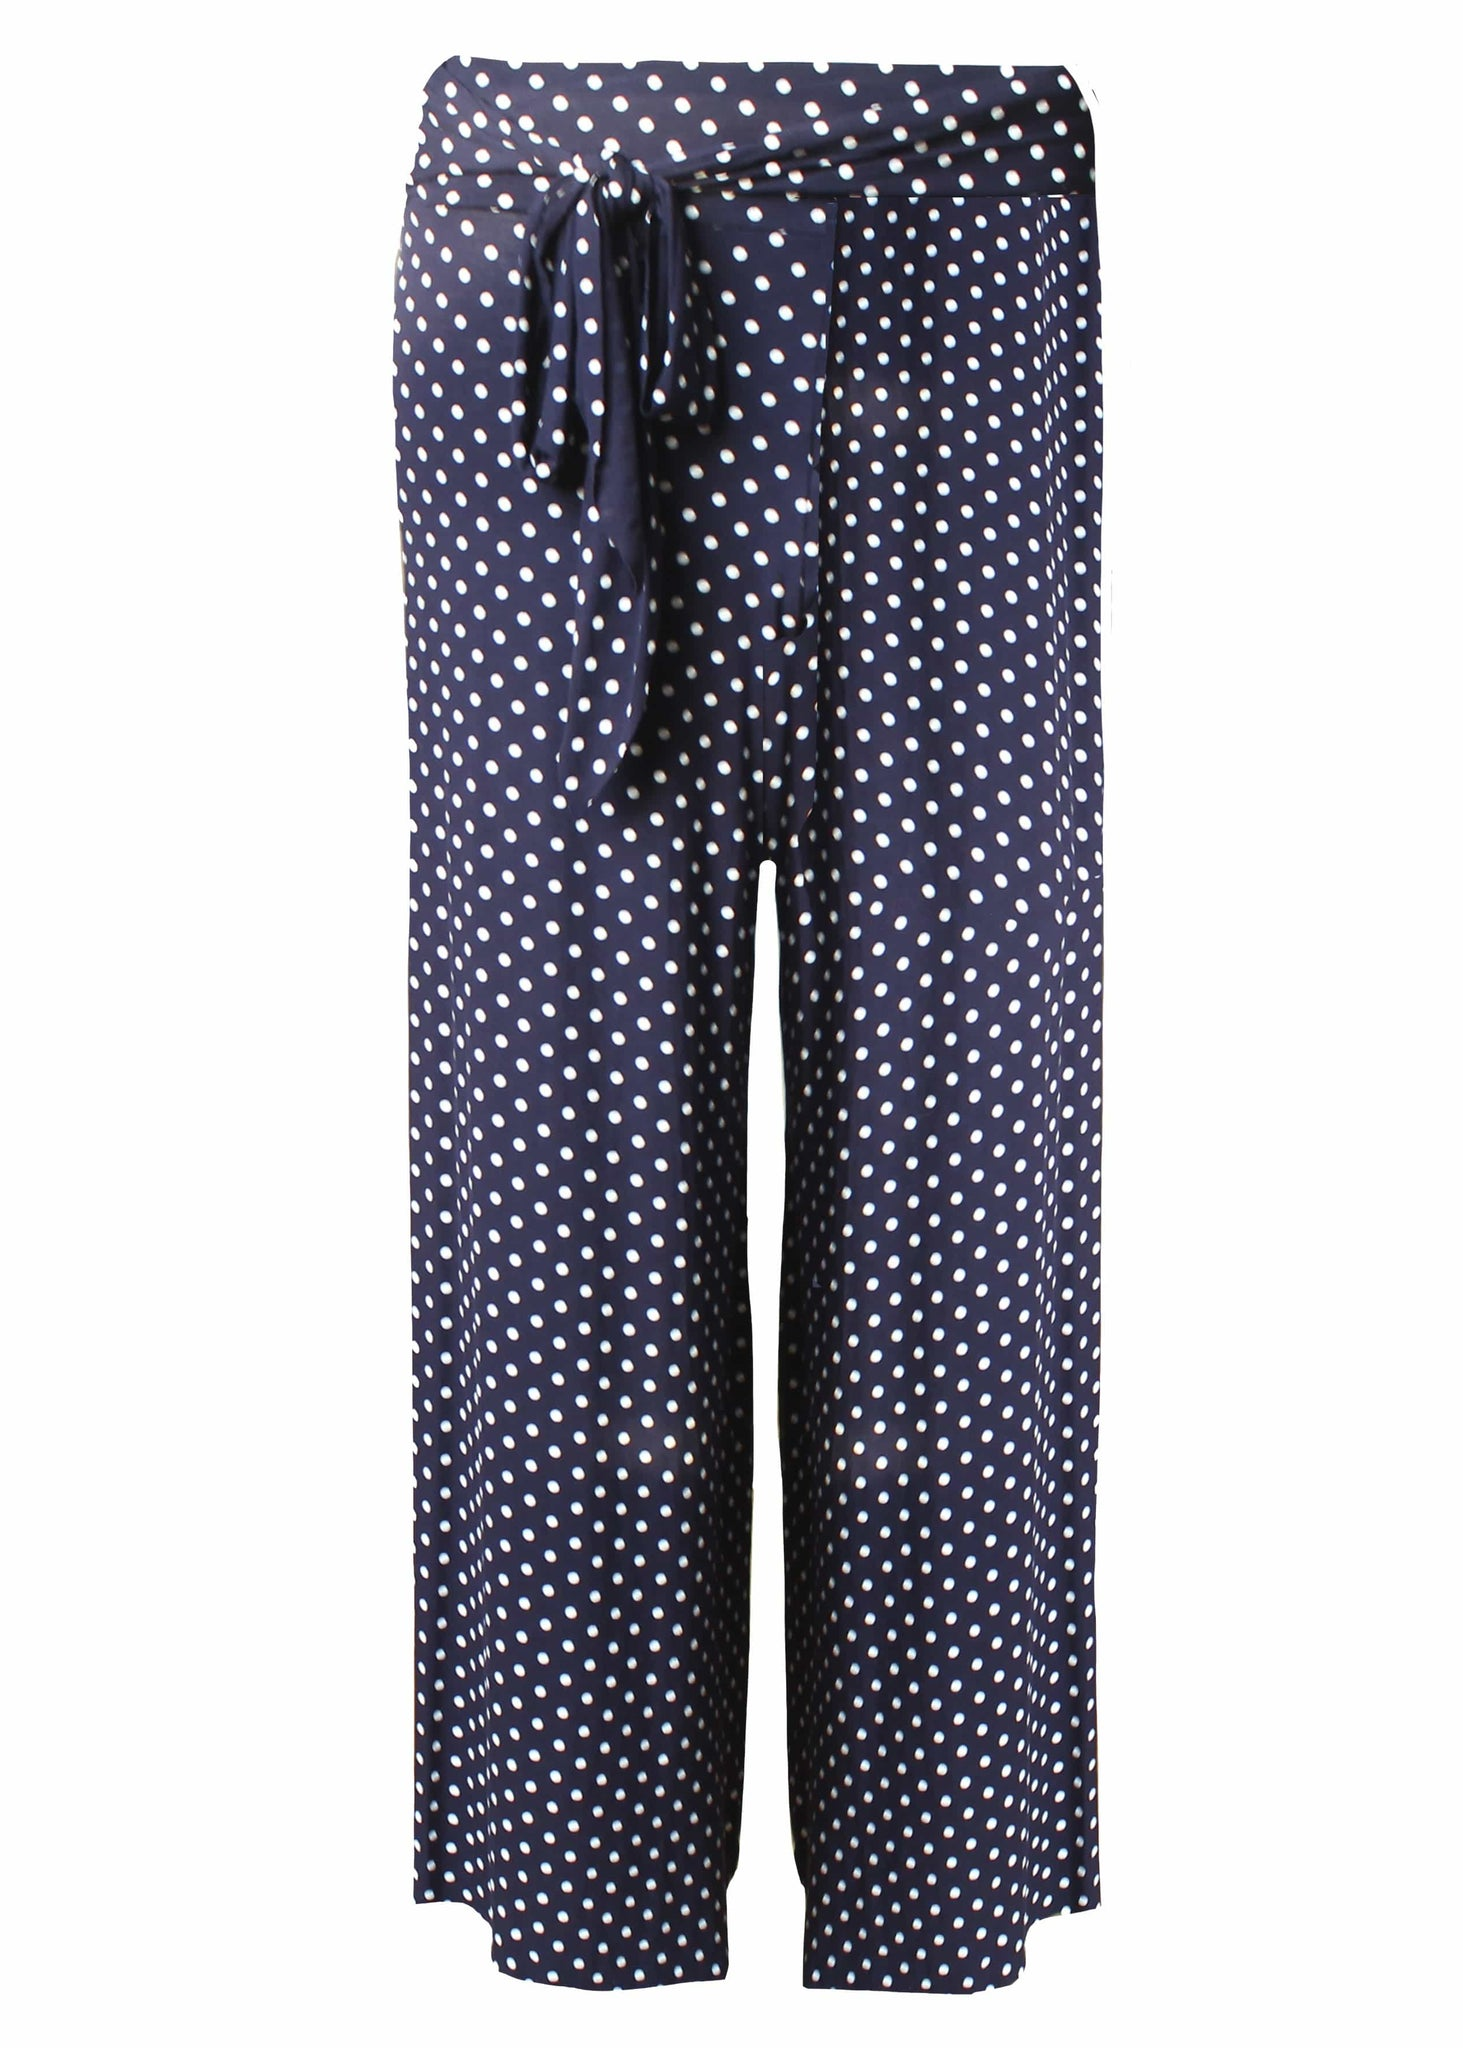 The Able Label Palazzo Spot Print Jersey Pull On Trouser